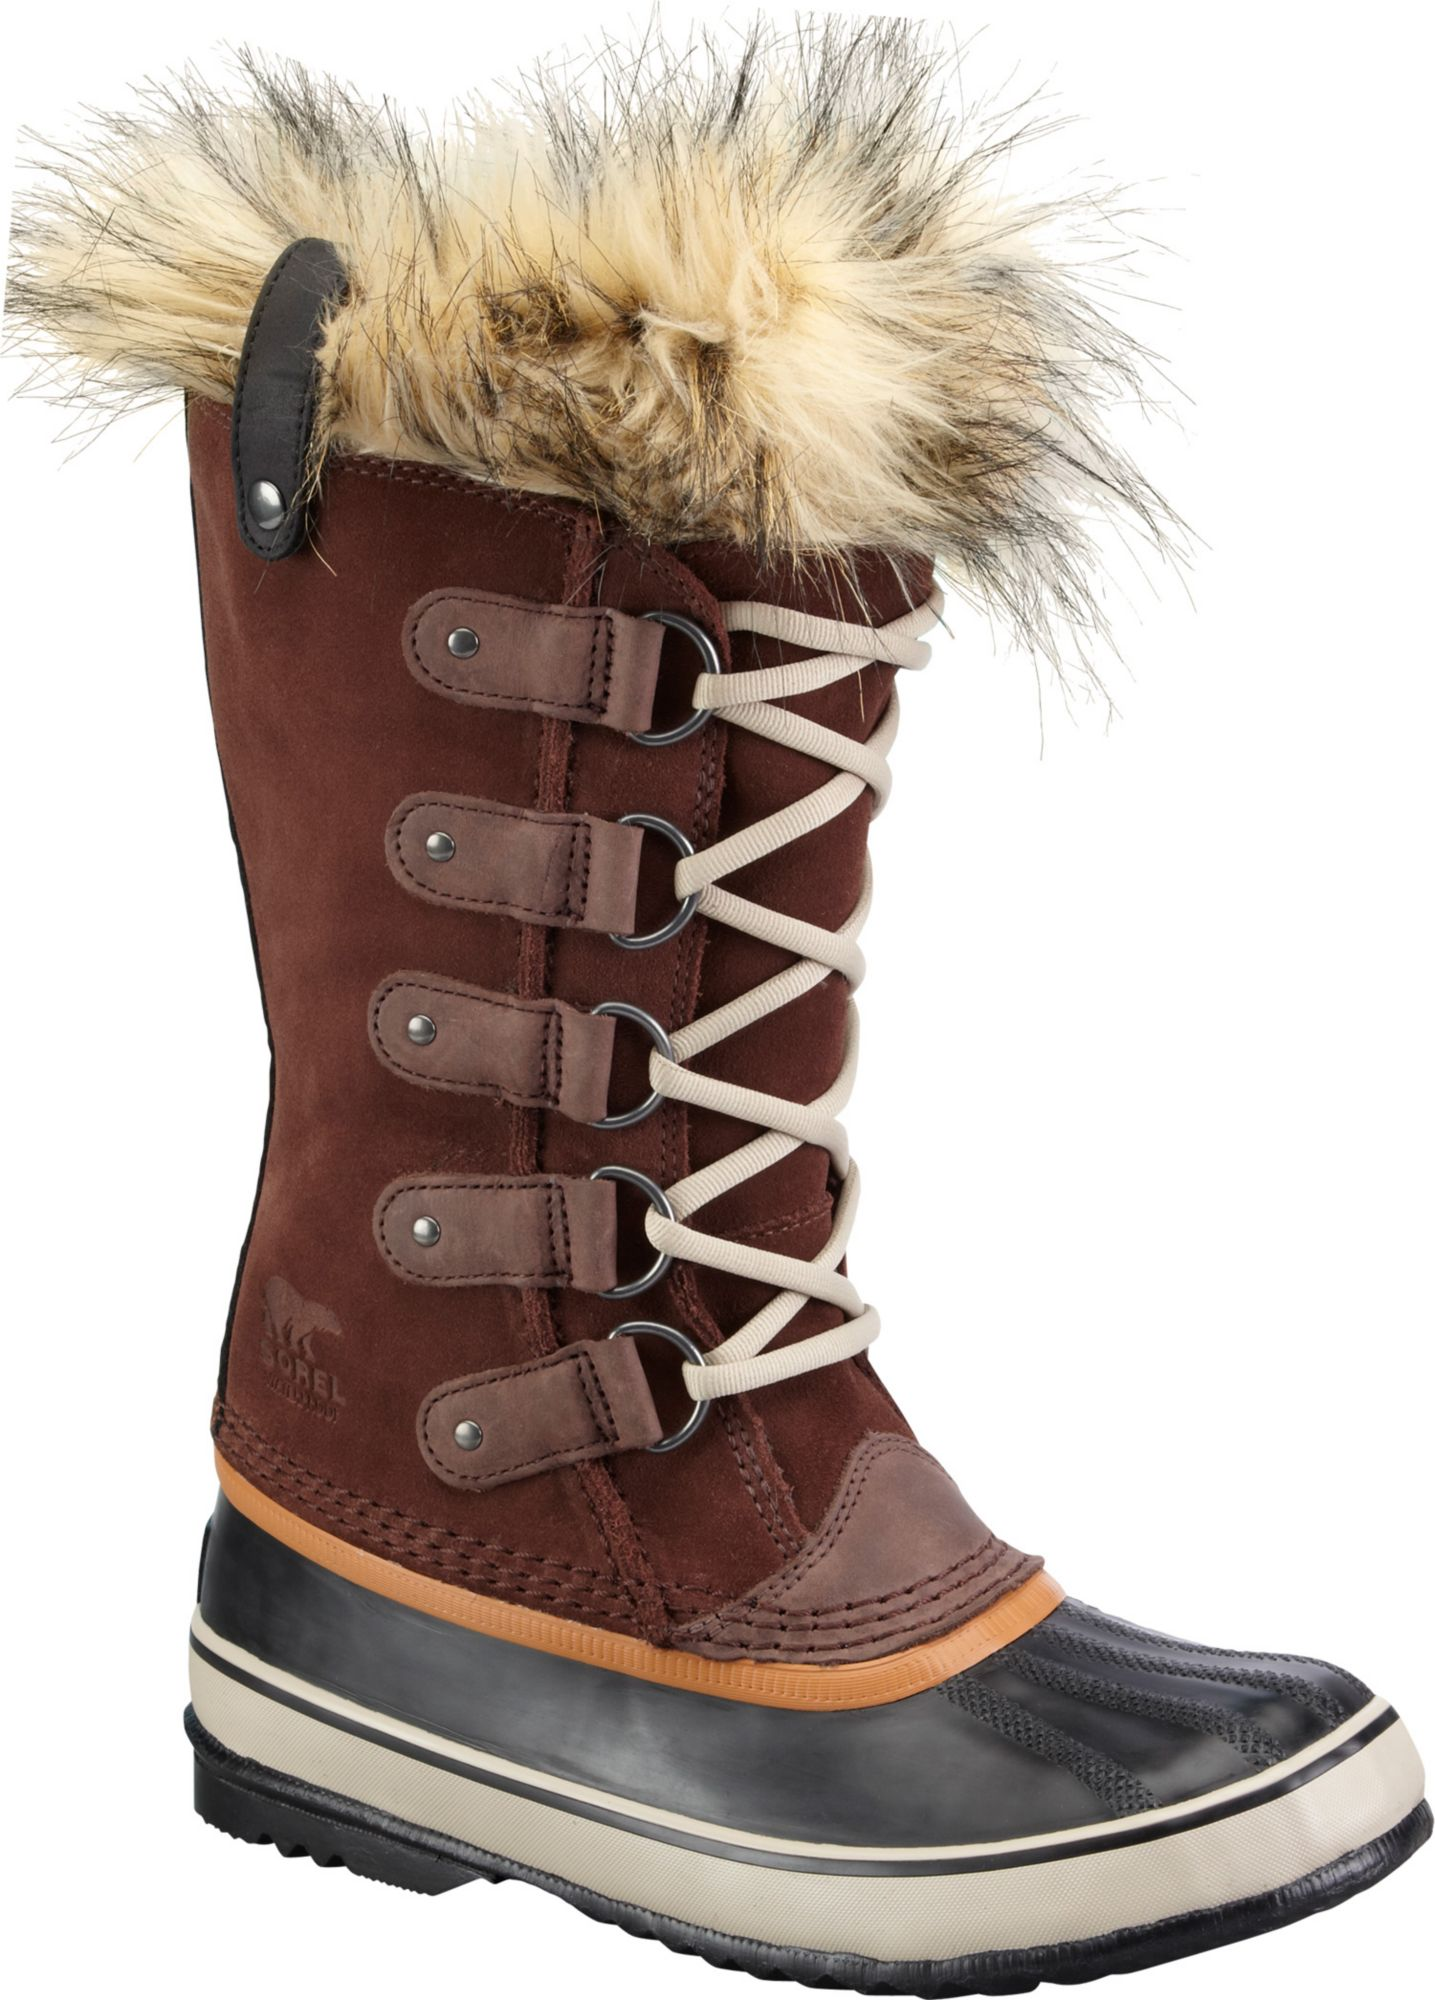 Sorel Boots for Women | DICK'S Sporting Goods